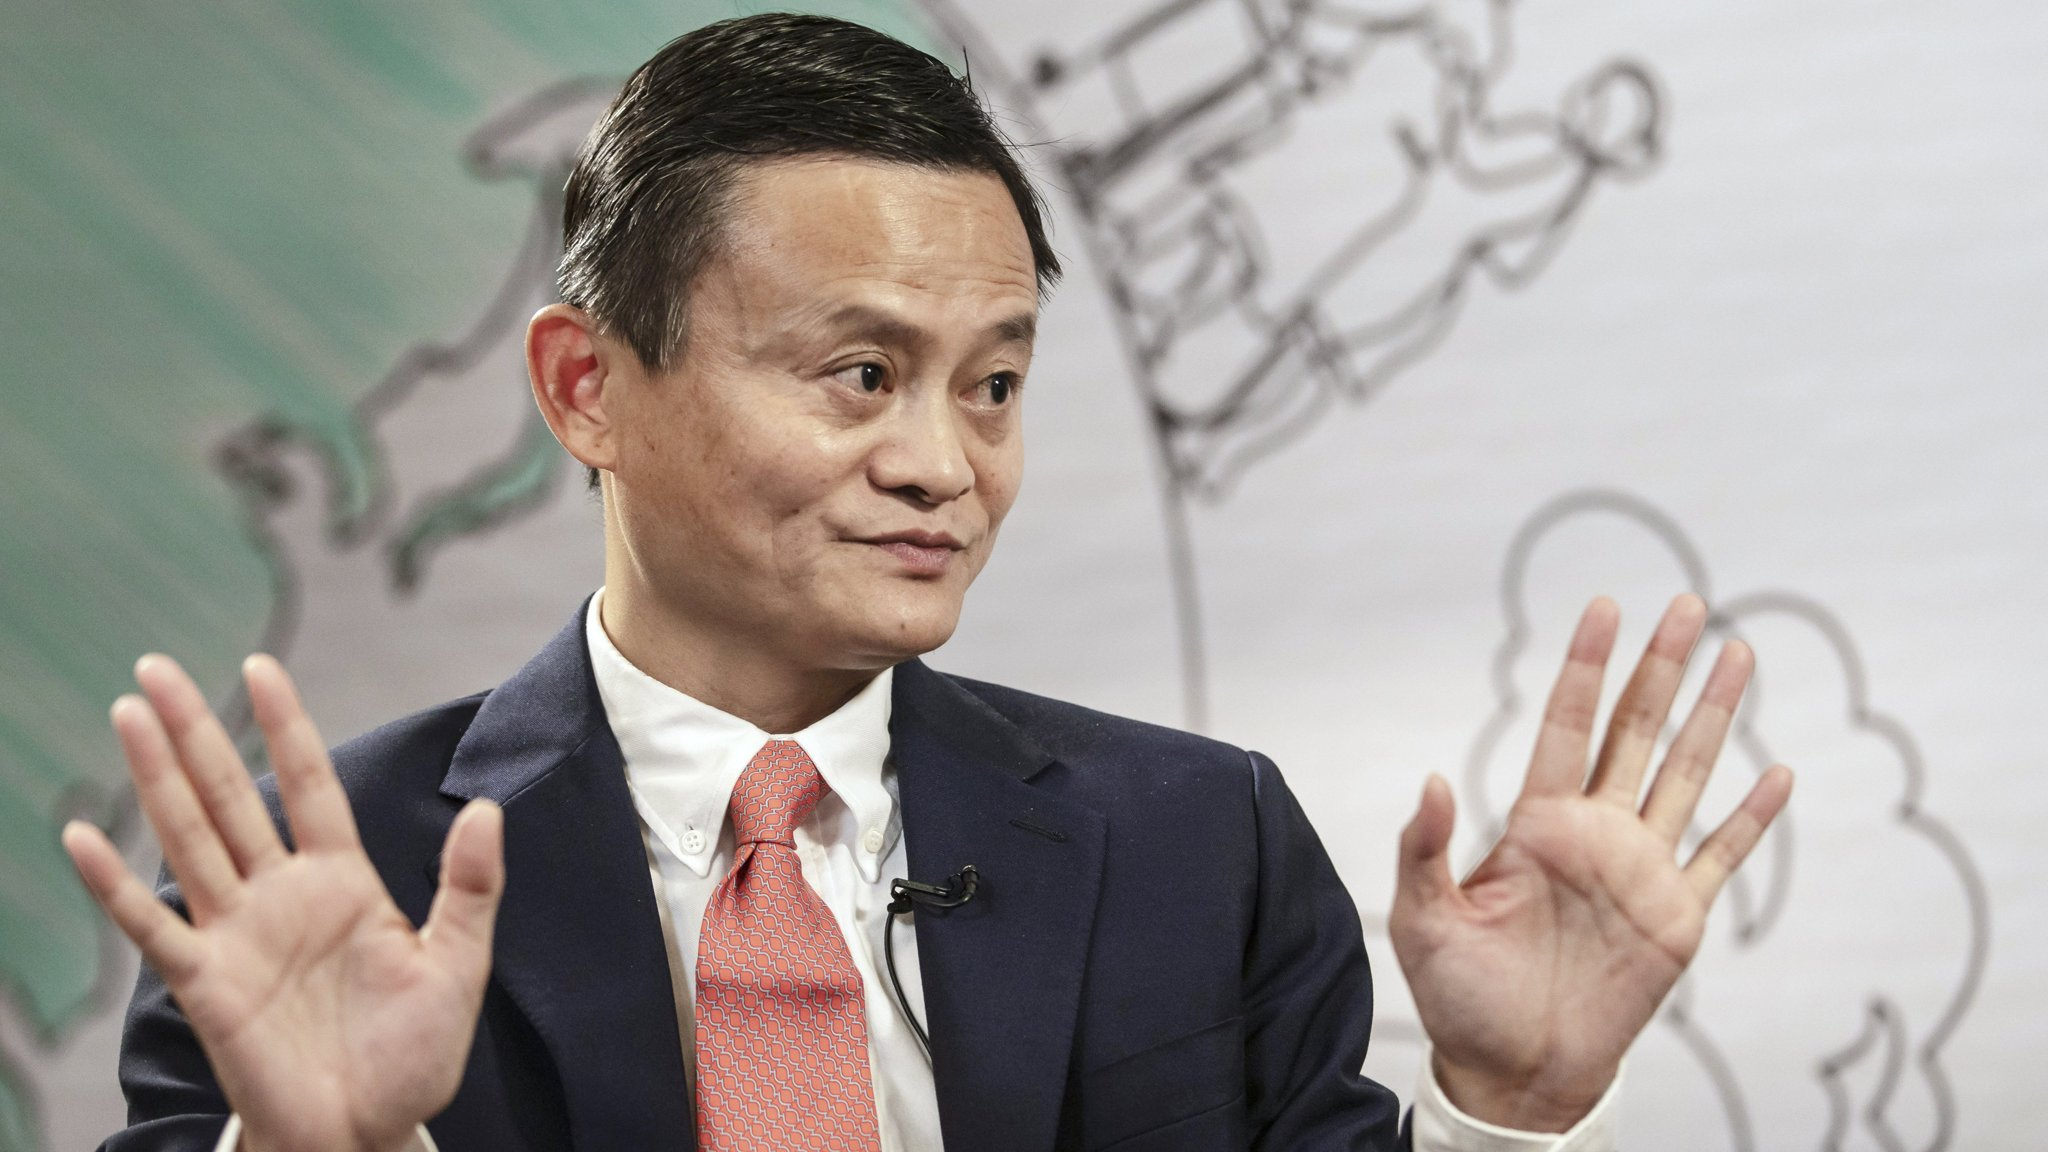 Jack Ma S Retirement From Alibaba A Decade In The Making Financial